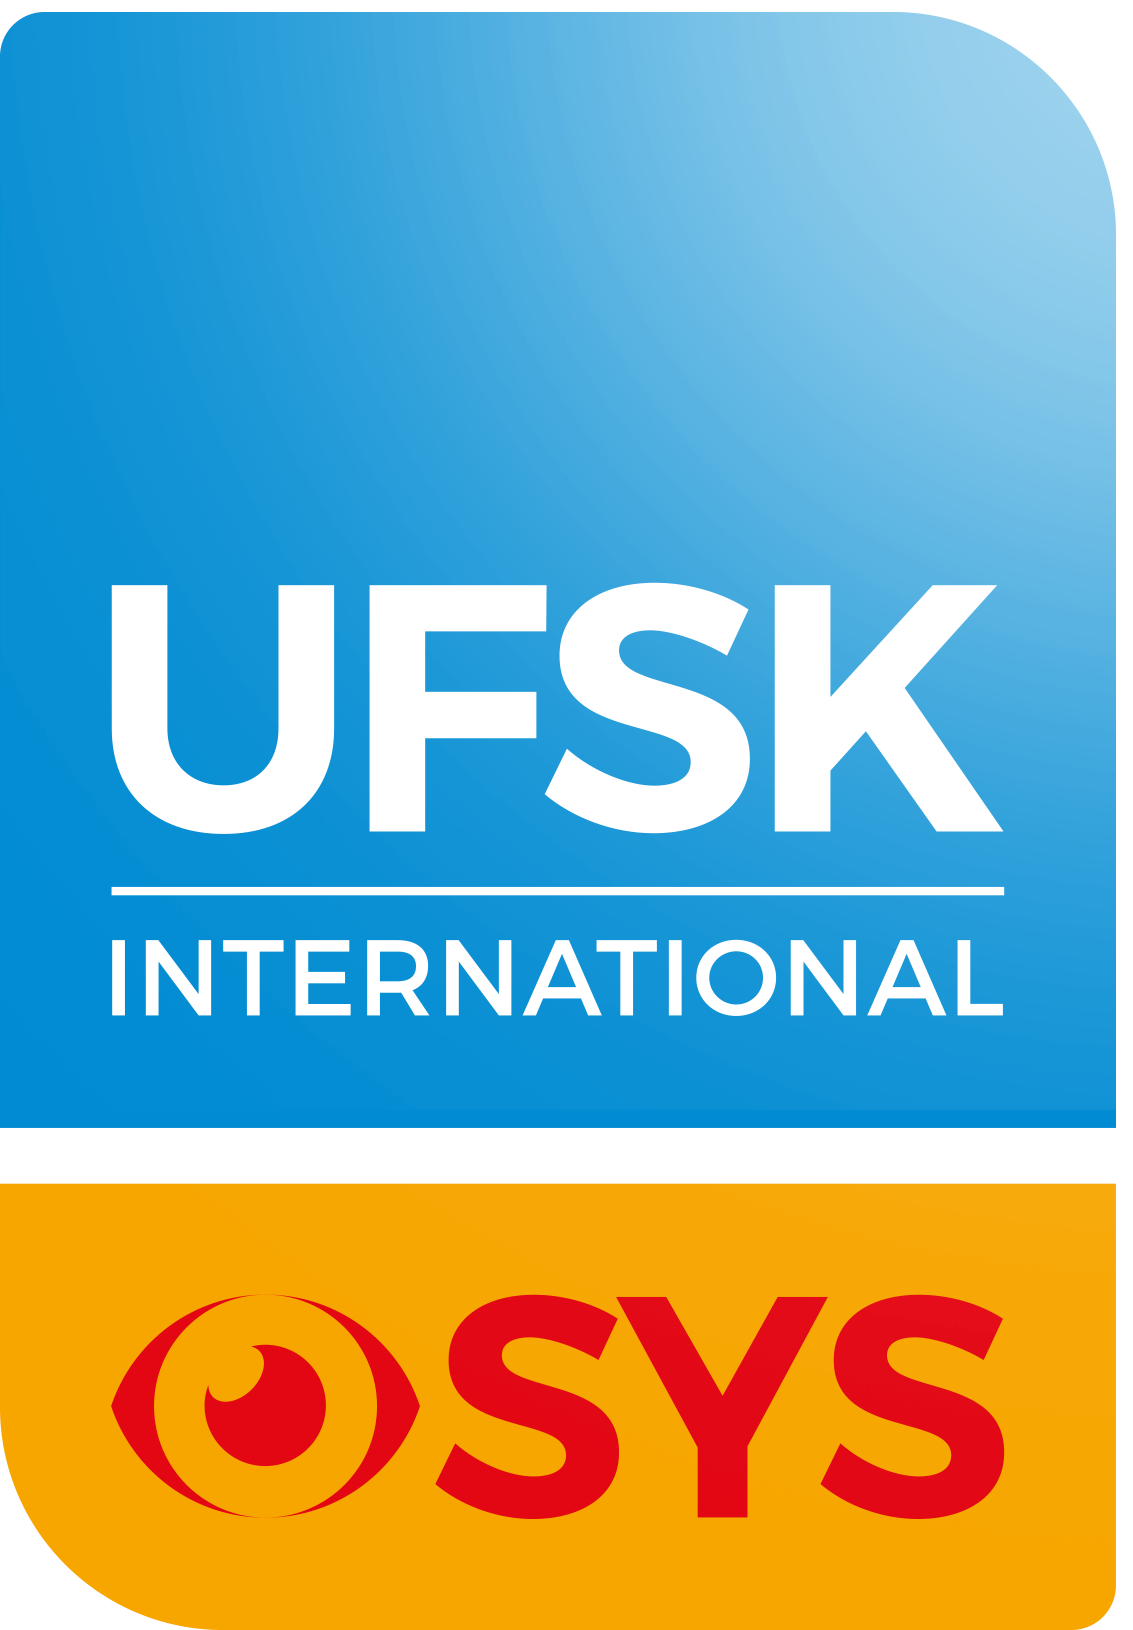 UFSK - International OSYS GmbH